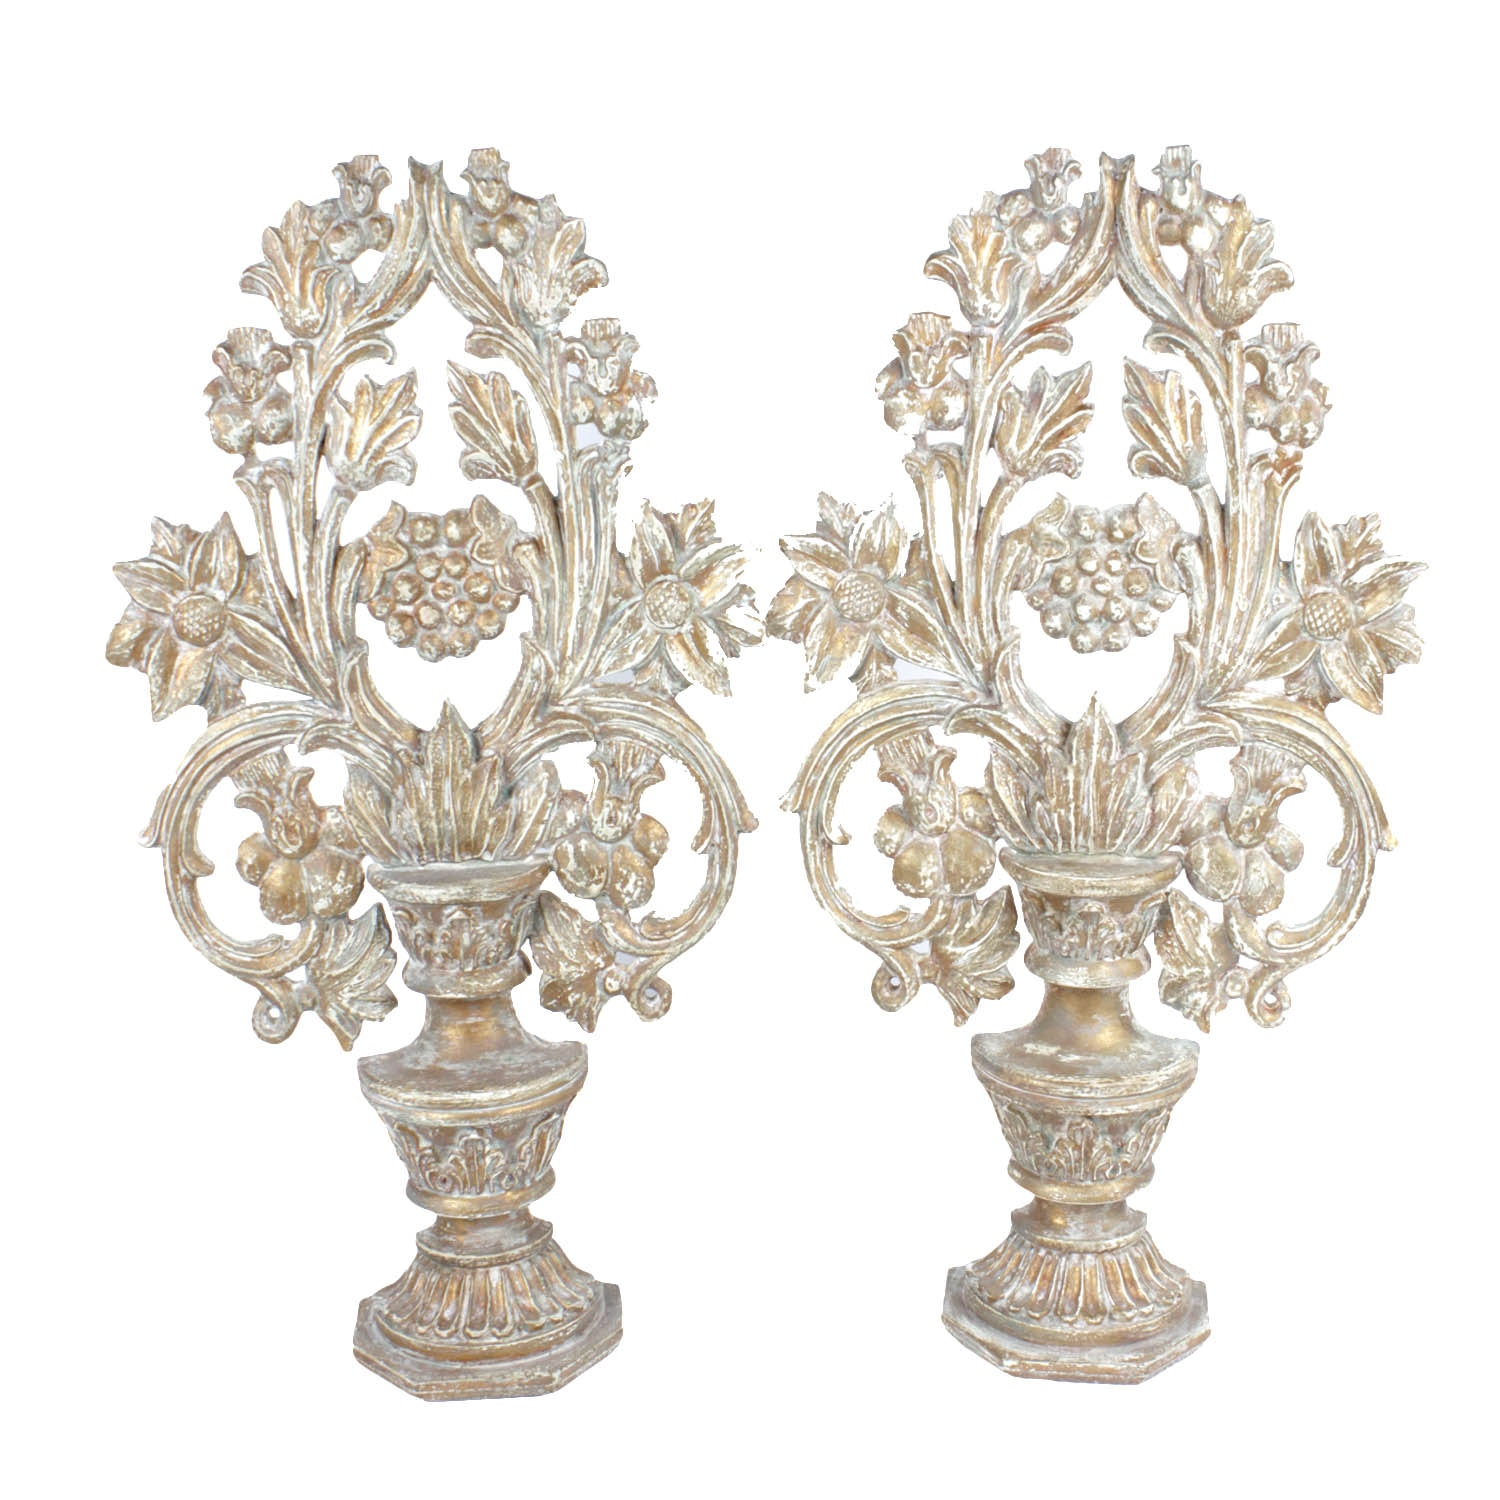 Pair of Festoni Floral Fireplace Decor